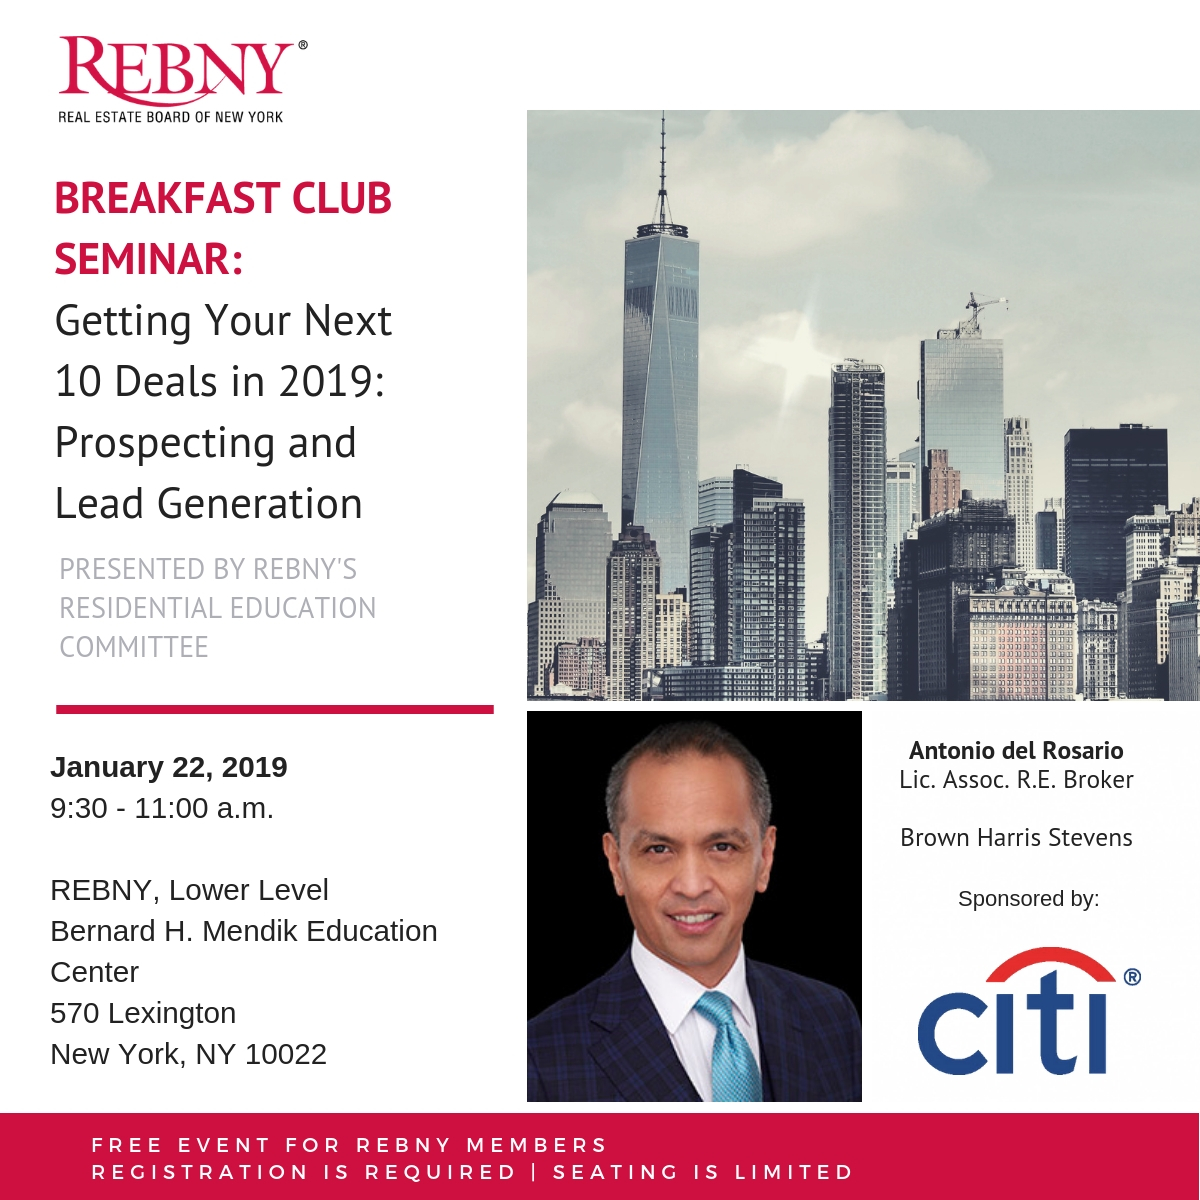 Breakfast Club Seminar -Get Your Next 10 Deals in 2019 - Prospecting and Lead Generation